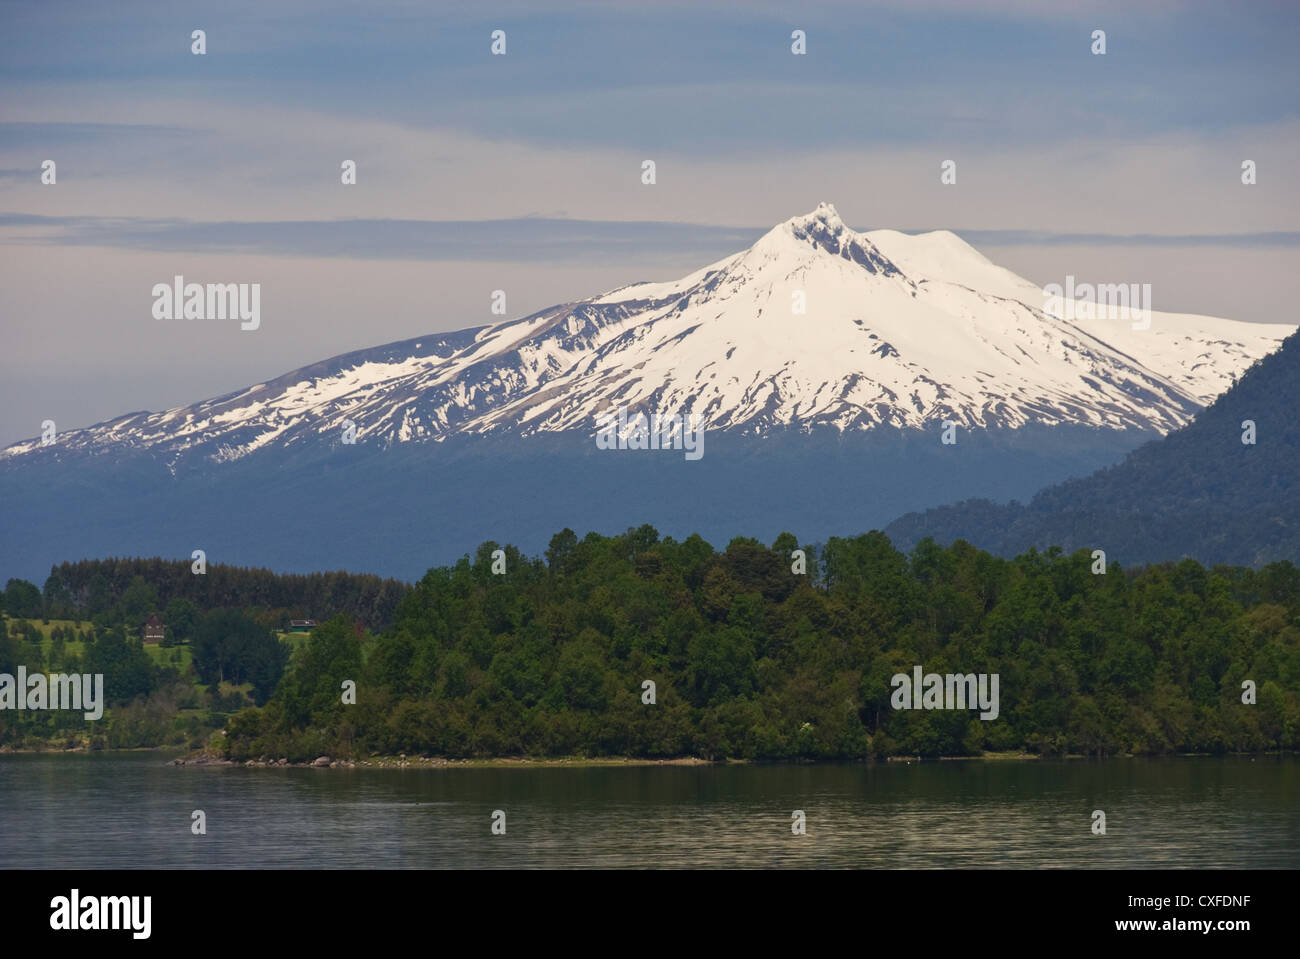 Elk198-3231 Chile, Panguipulli, Volcan Chosuenco - Stock Image